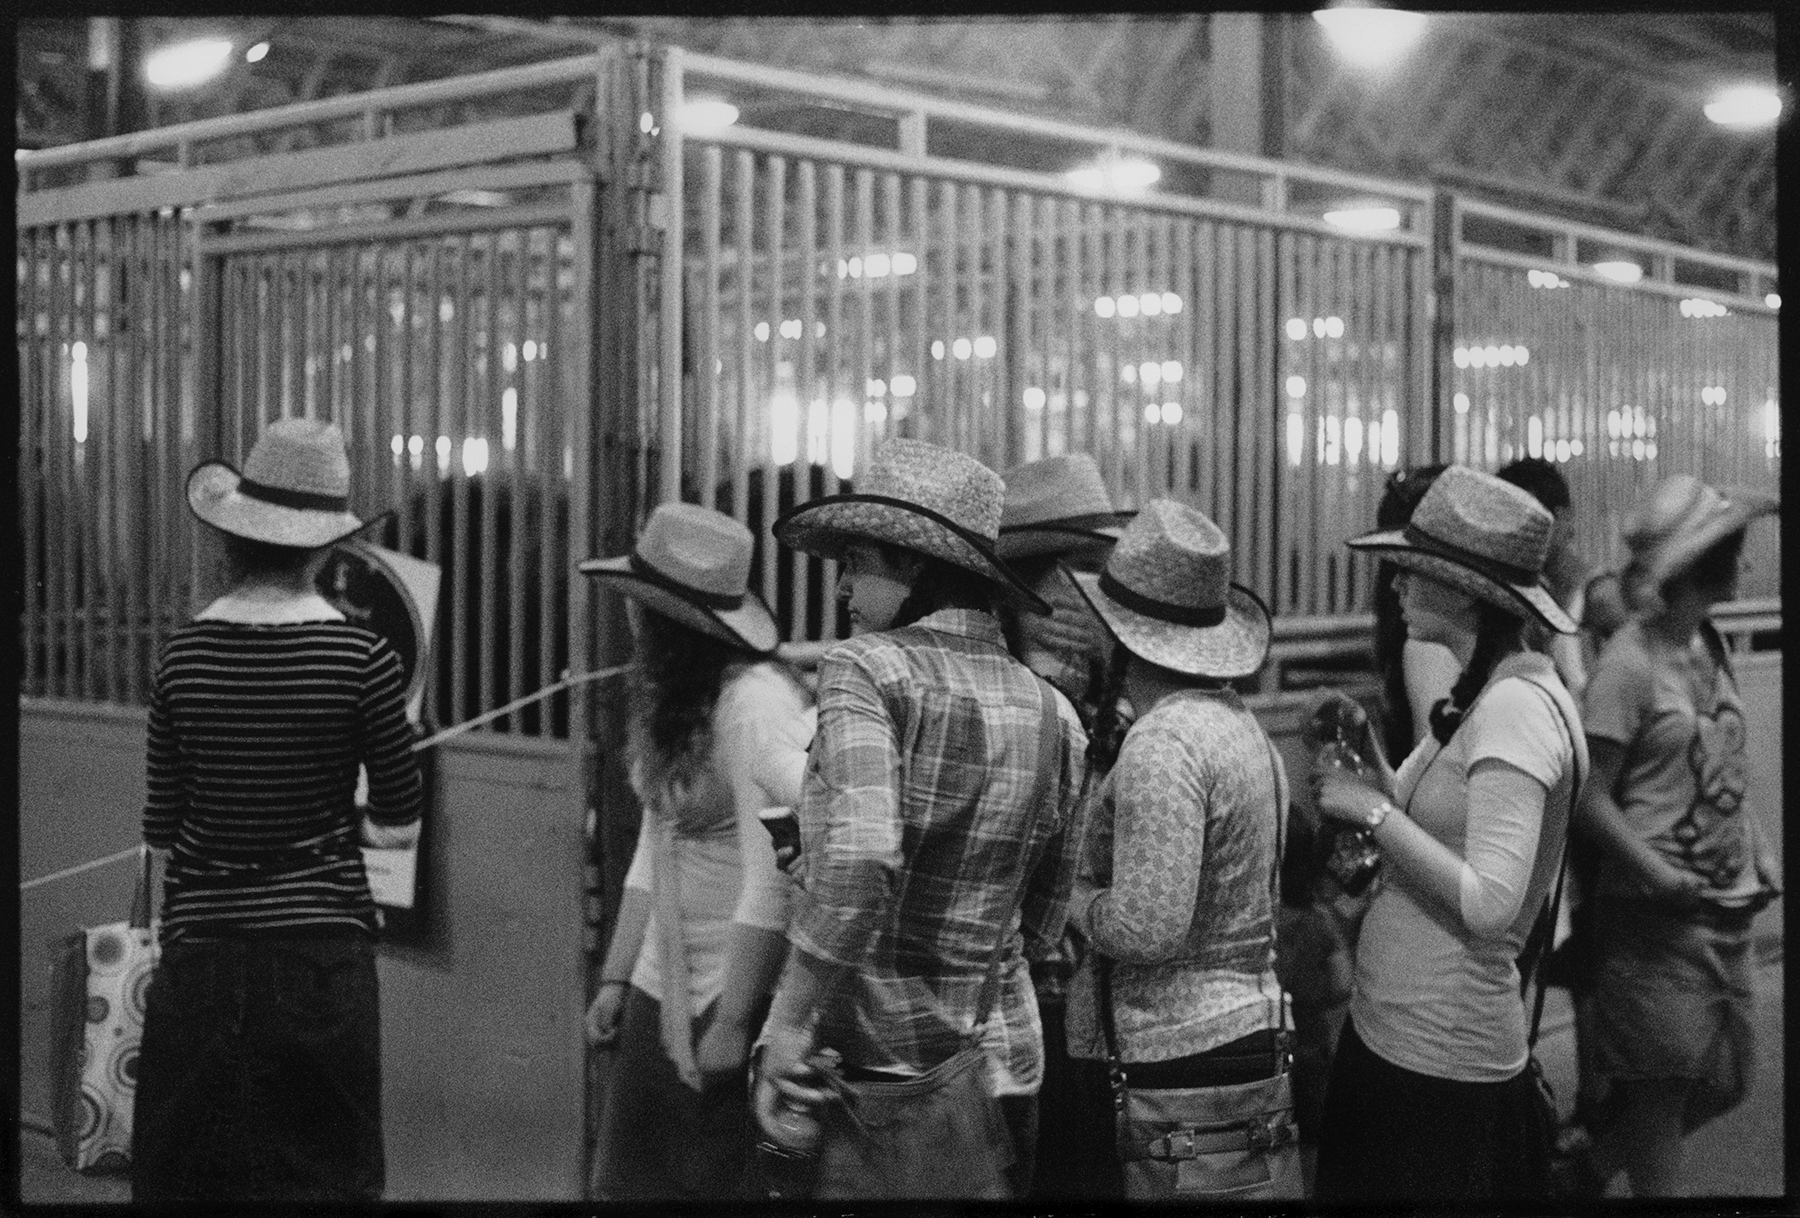 Stampede girls in hats, 8x10 print.jpg